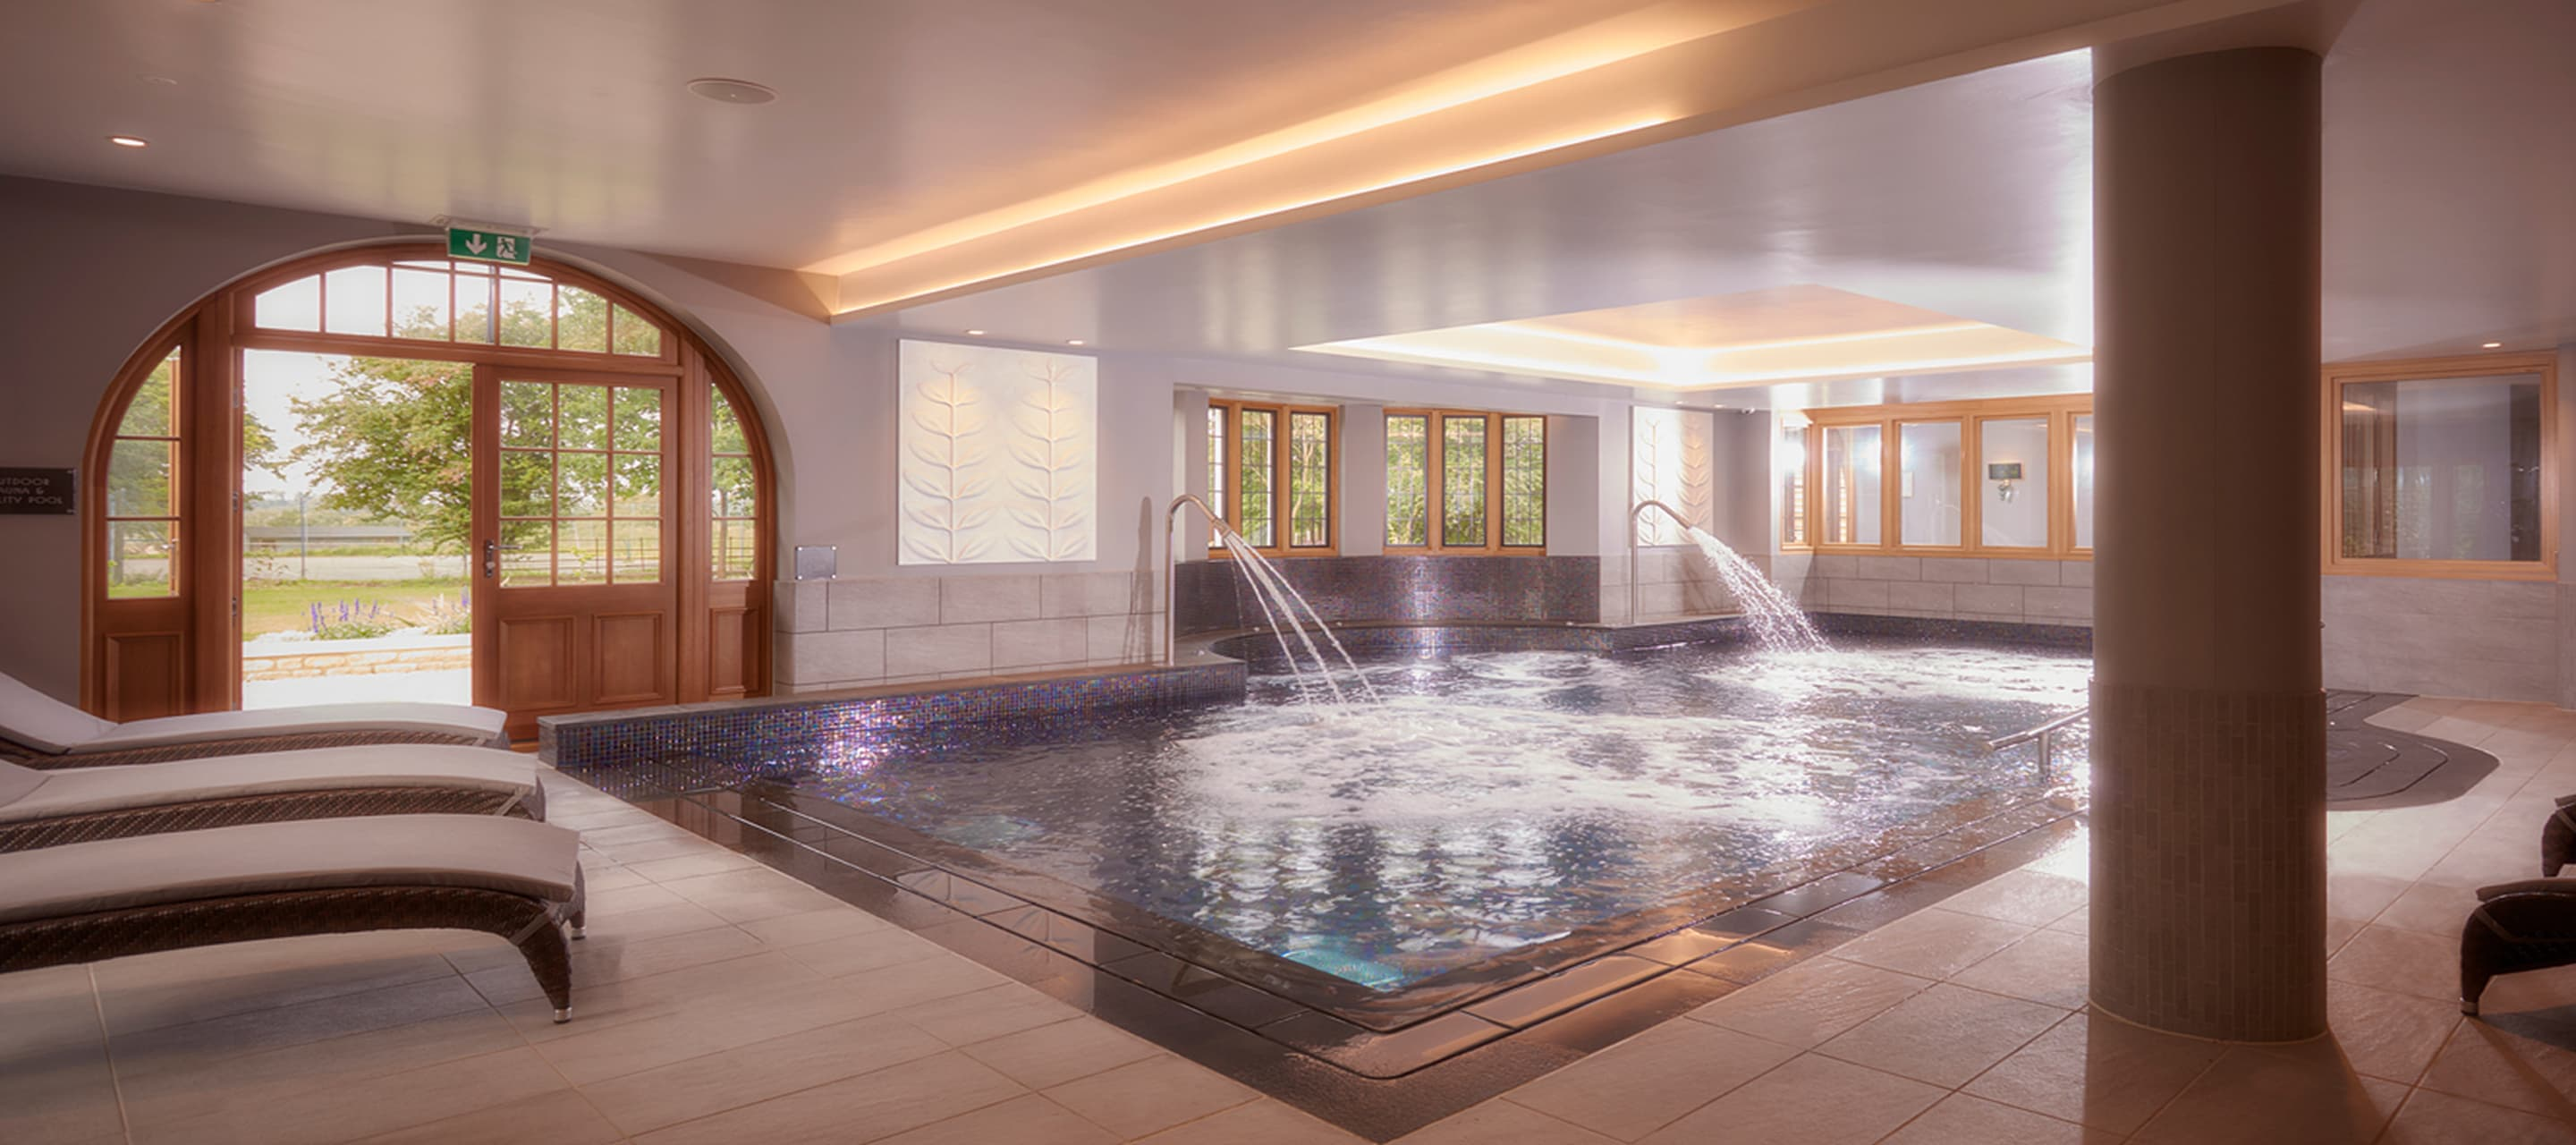 Eden Hotel Collection's spa at Mallory Court | Eden Hotel Collection Group